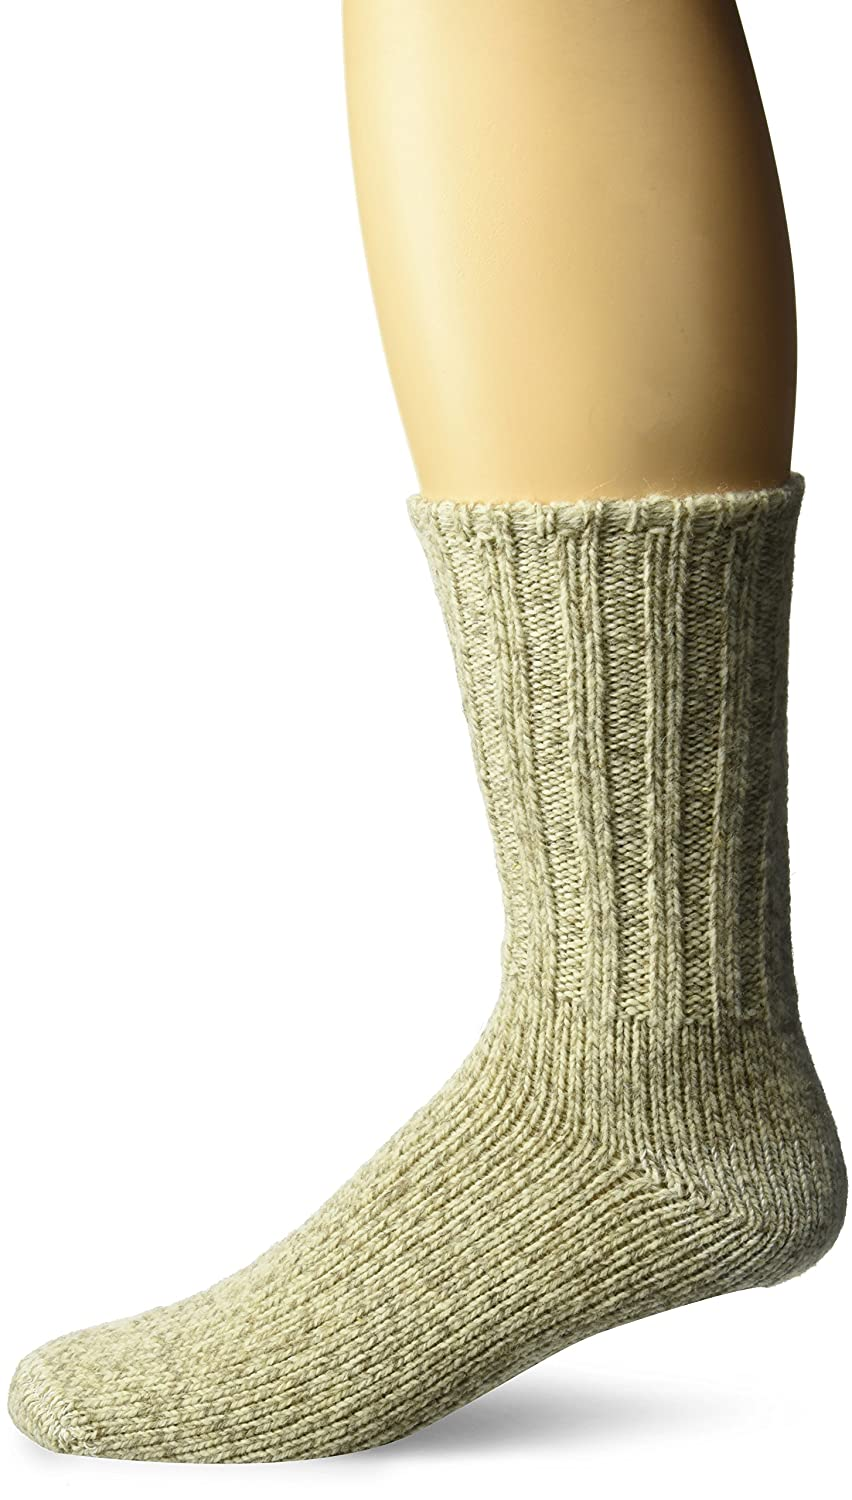 Fox River Norsk Crew Socks, Brown Tweed, Medium 2389